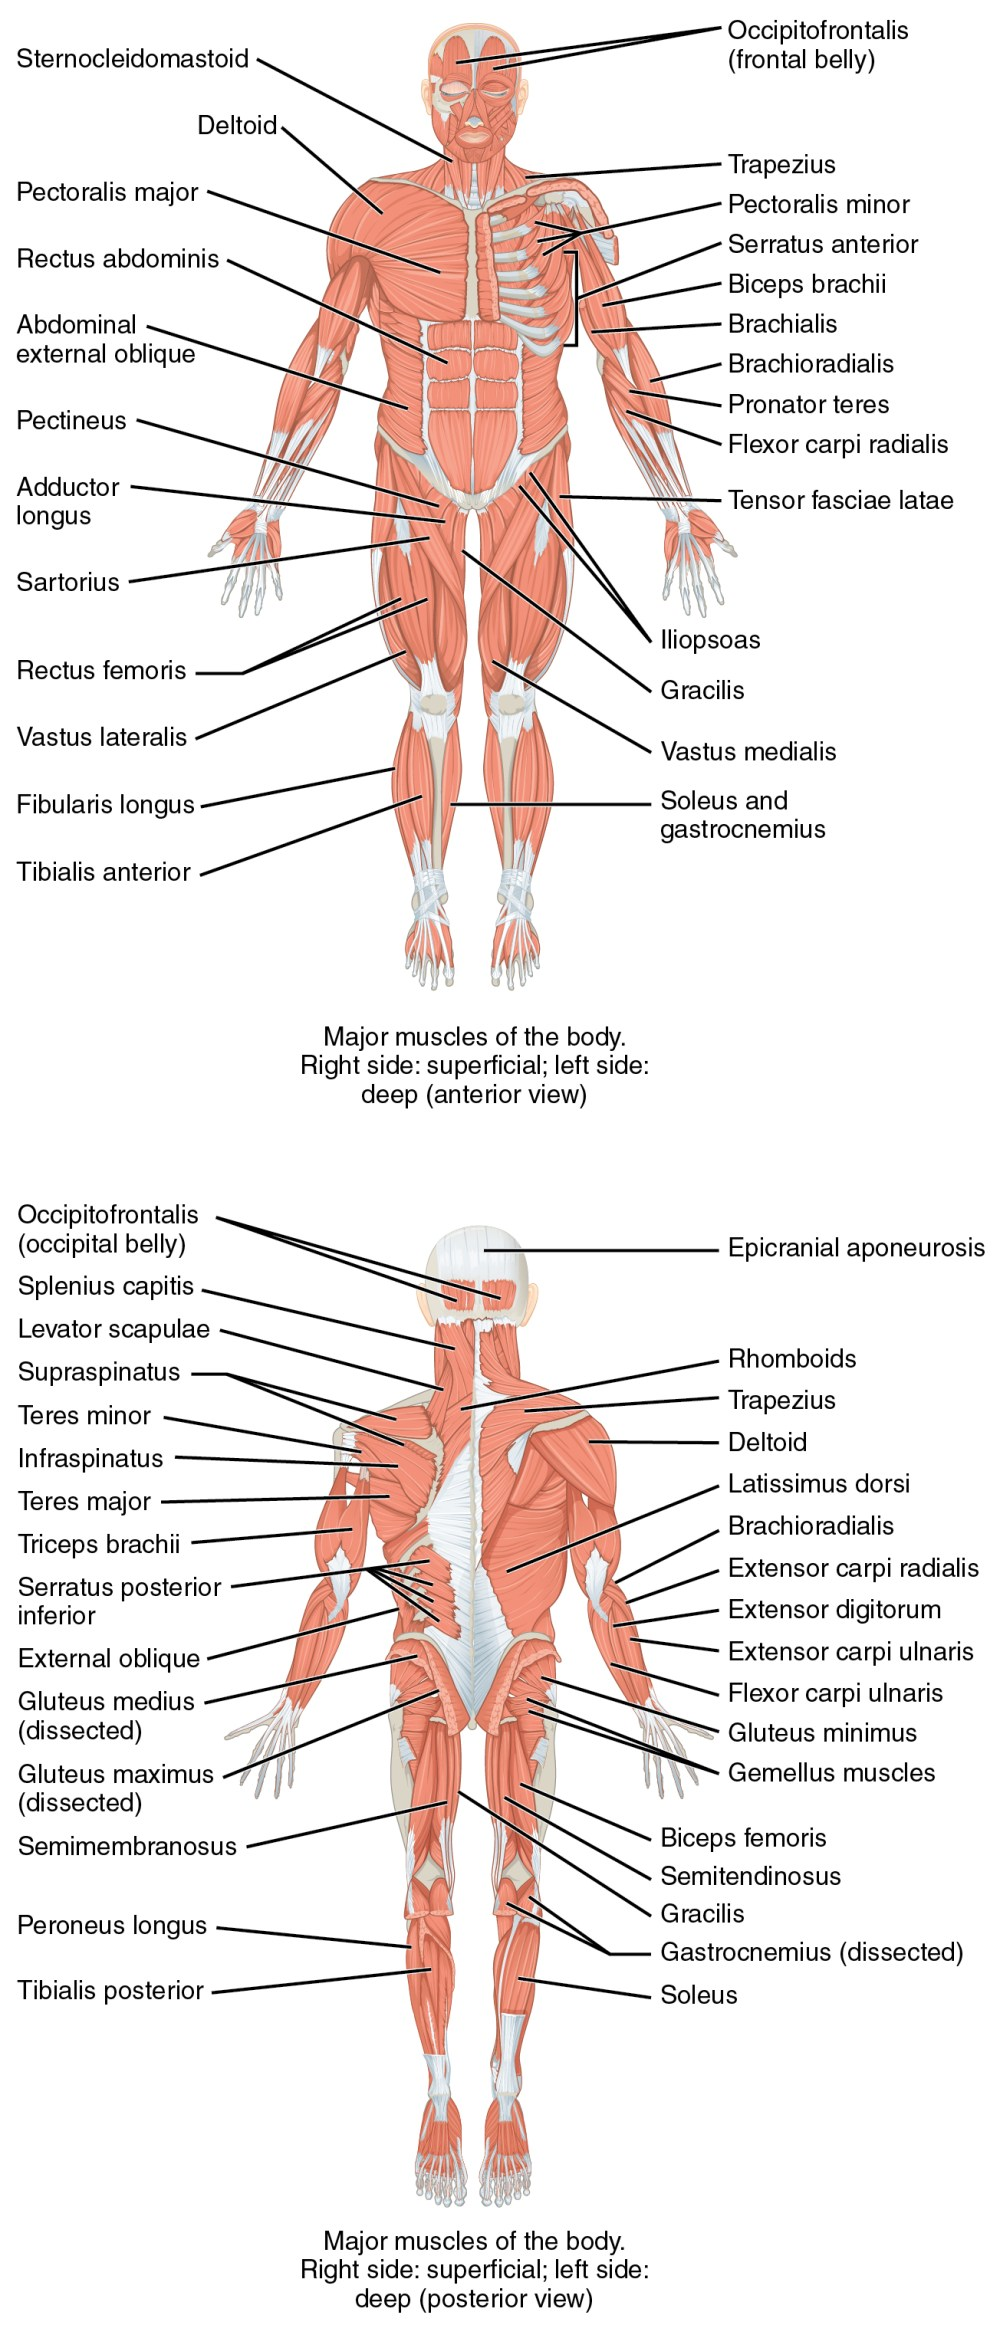 medium resolution of file 1105 anterior and posterior views of muscles jpg